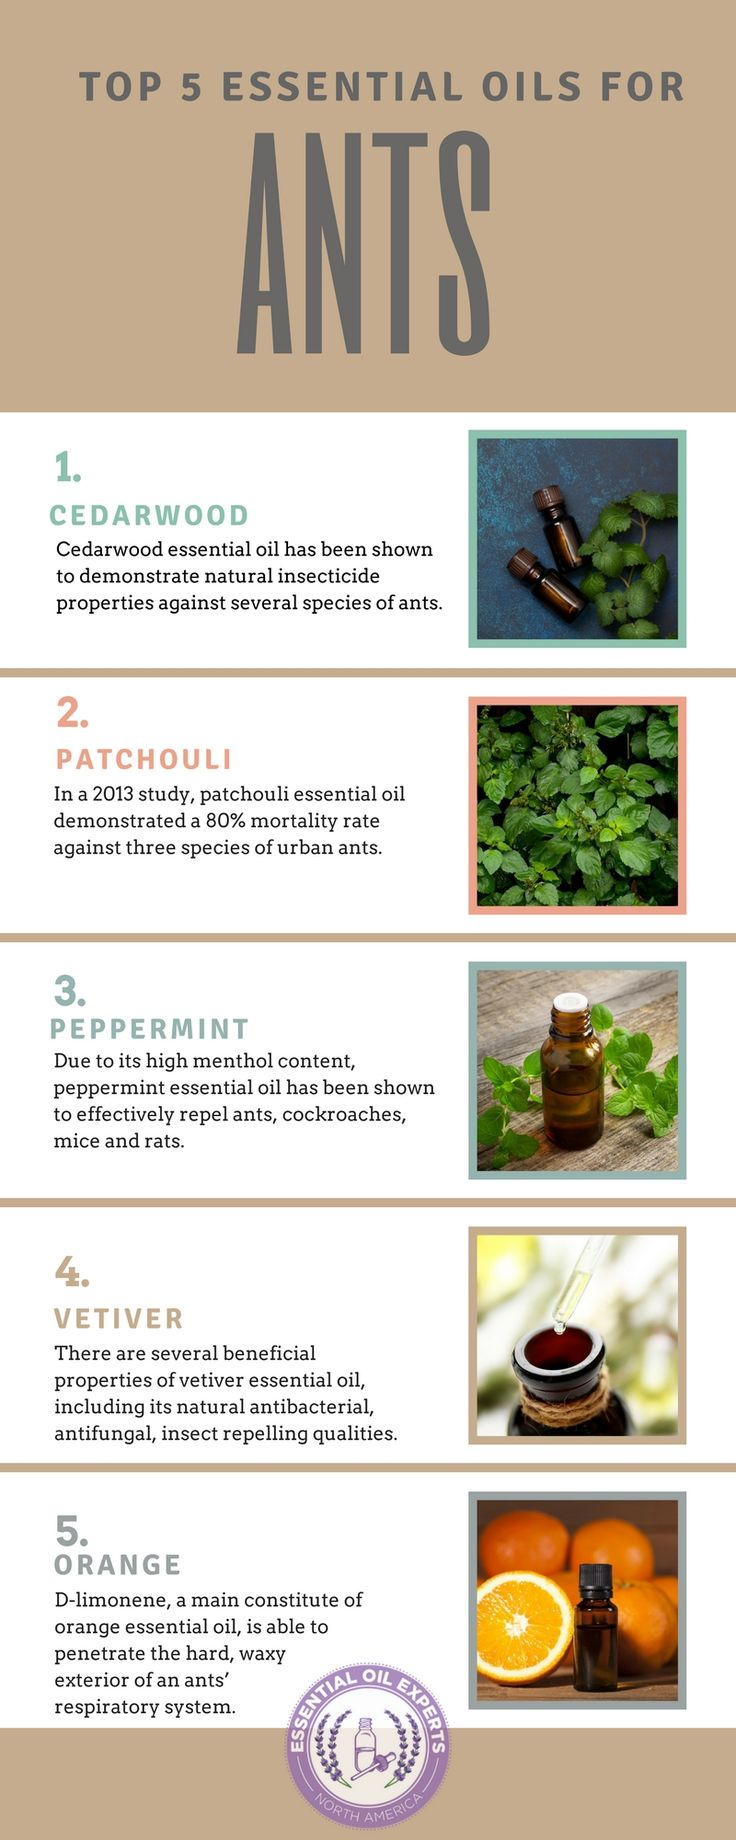 How to naturally get rid of ants how to naturally get rid of ants - Essential Oils For Ants How To Get Rid Of Ants Naturally Repellent Killer